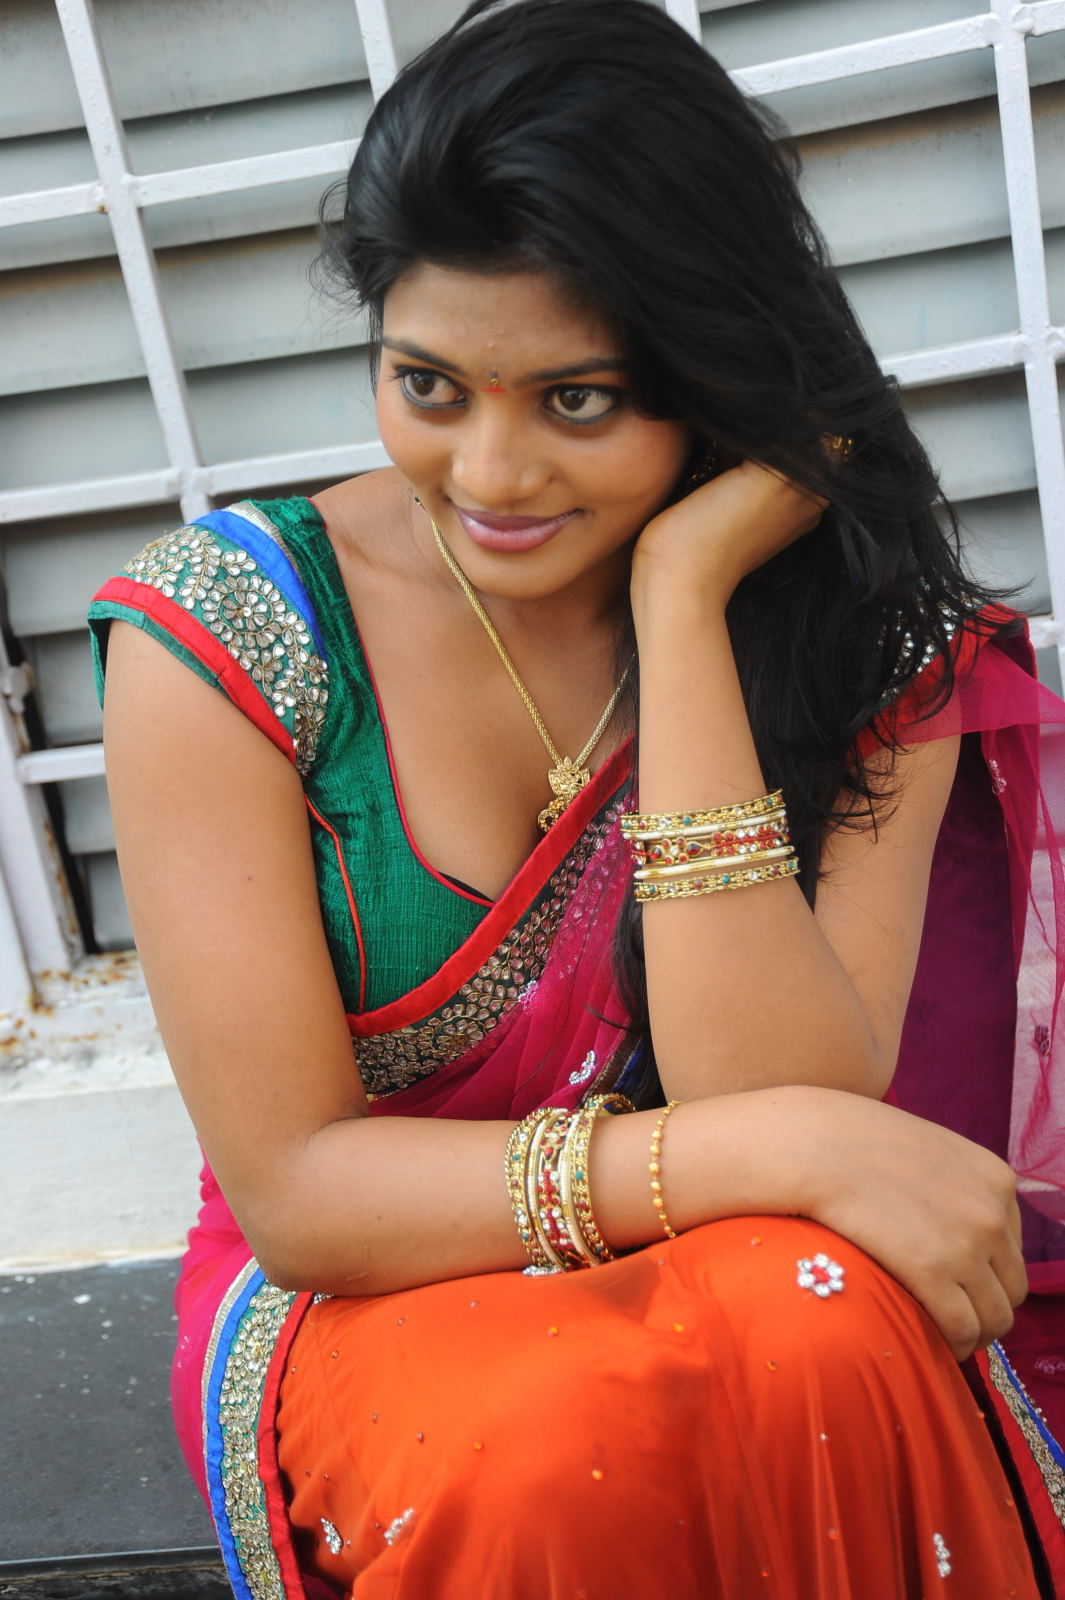 Soumya looks cute in Red Saree and Black Blouse